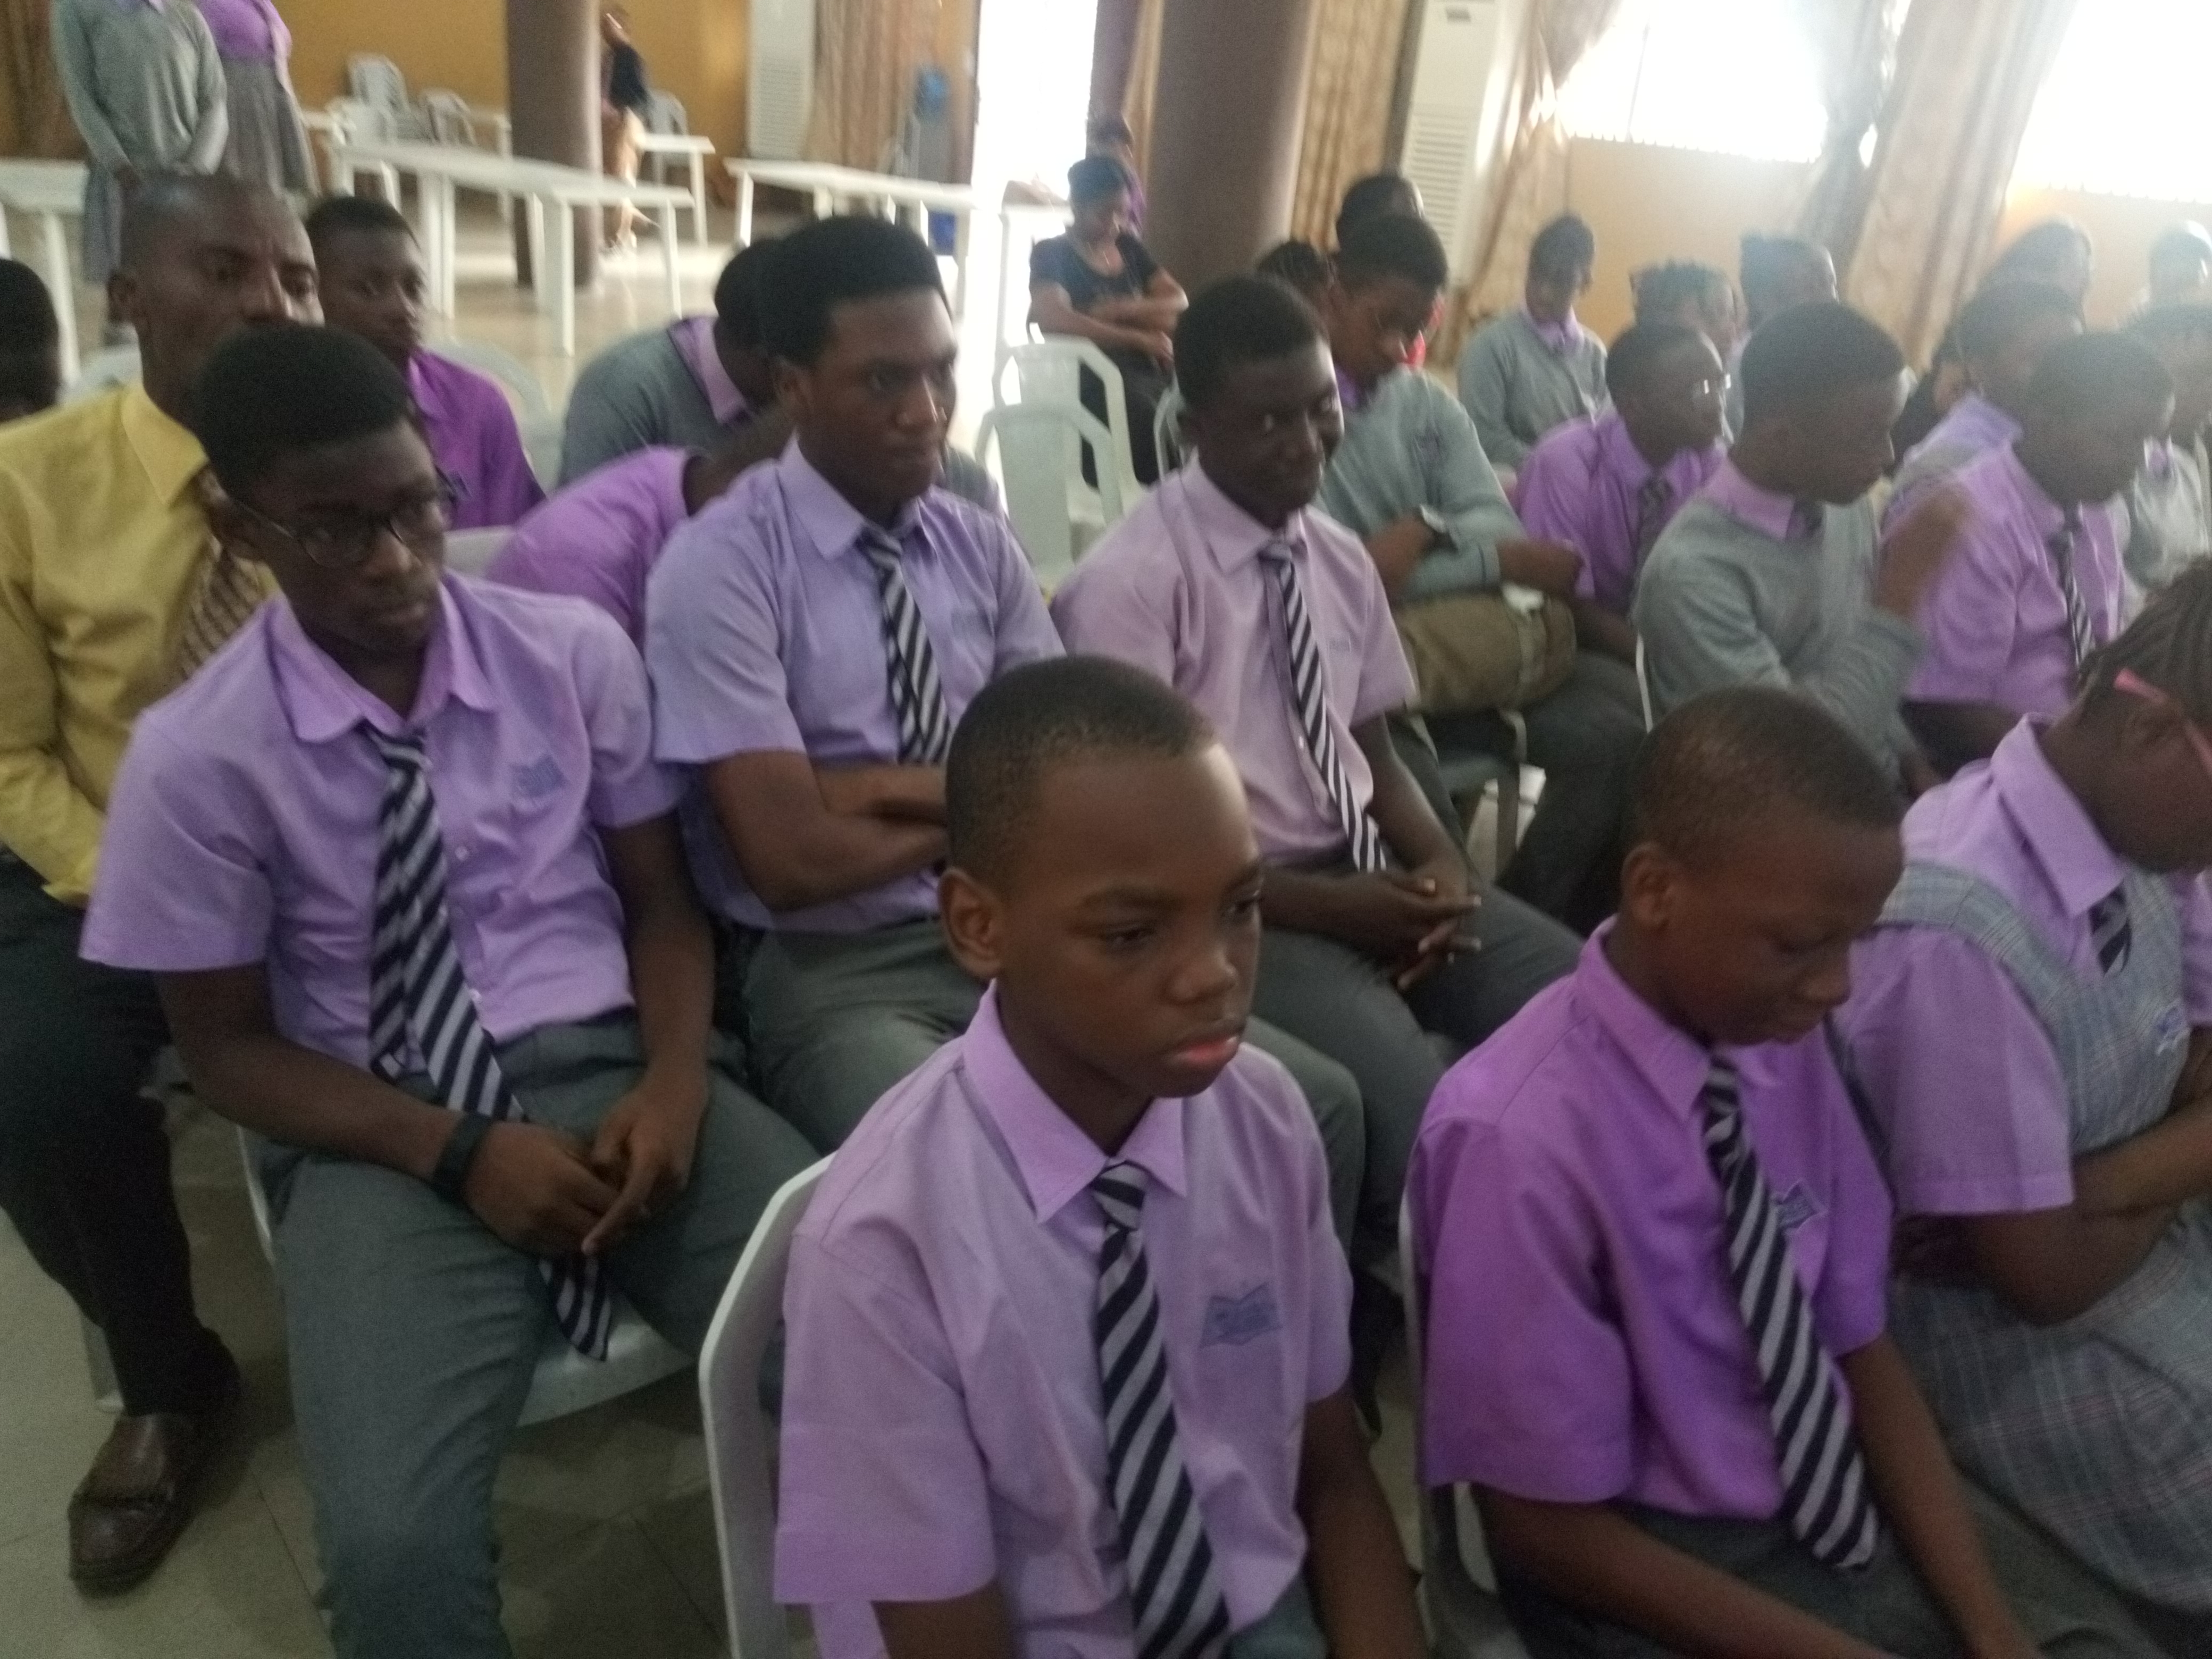 STUDENTS LISTENING ATTENTIVELY TO HEALTH TALK